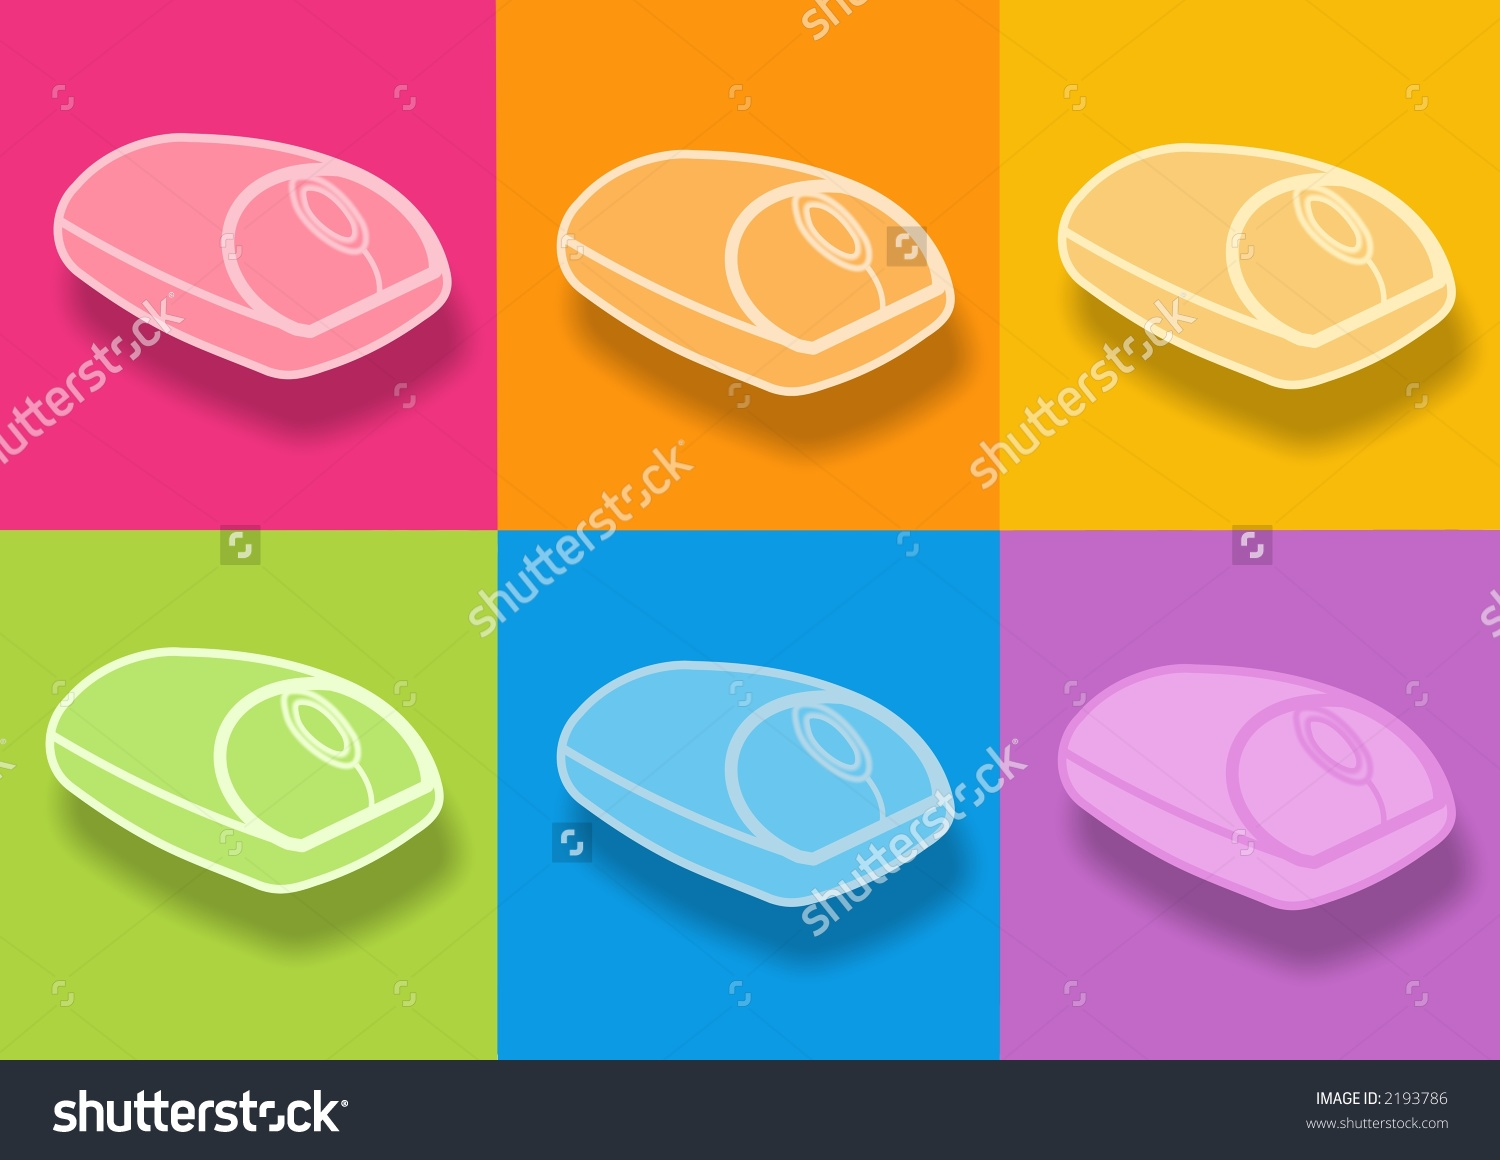 3d Mouse Icon Computer Generated Clipart Stock Illustration.